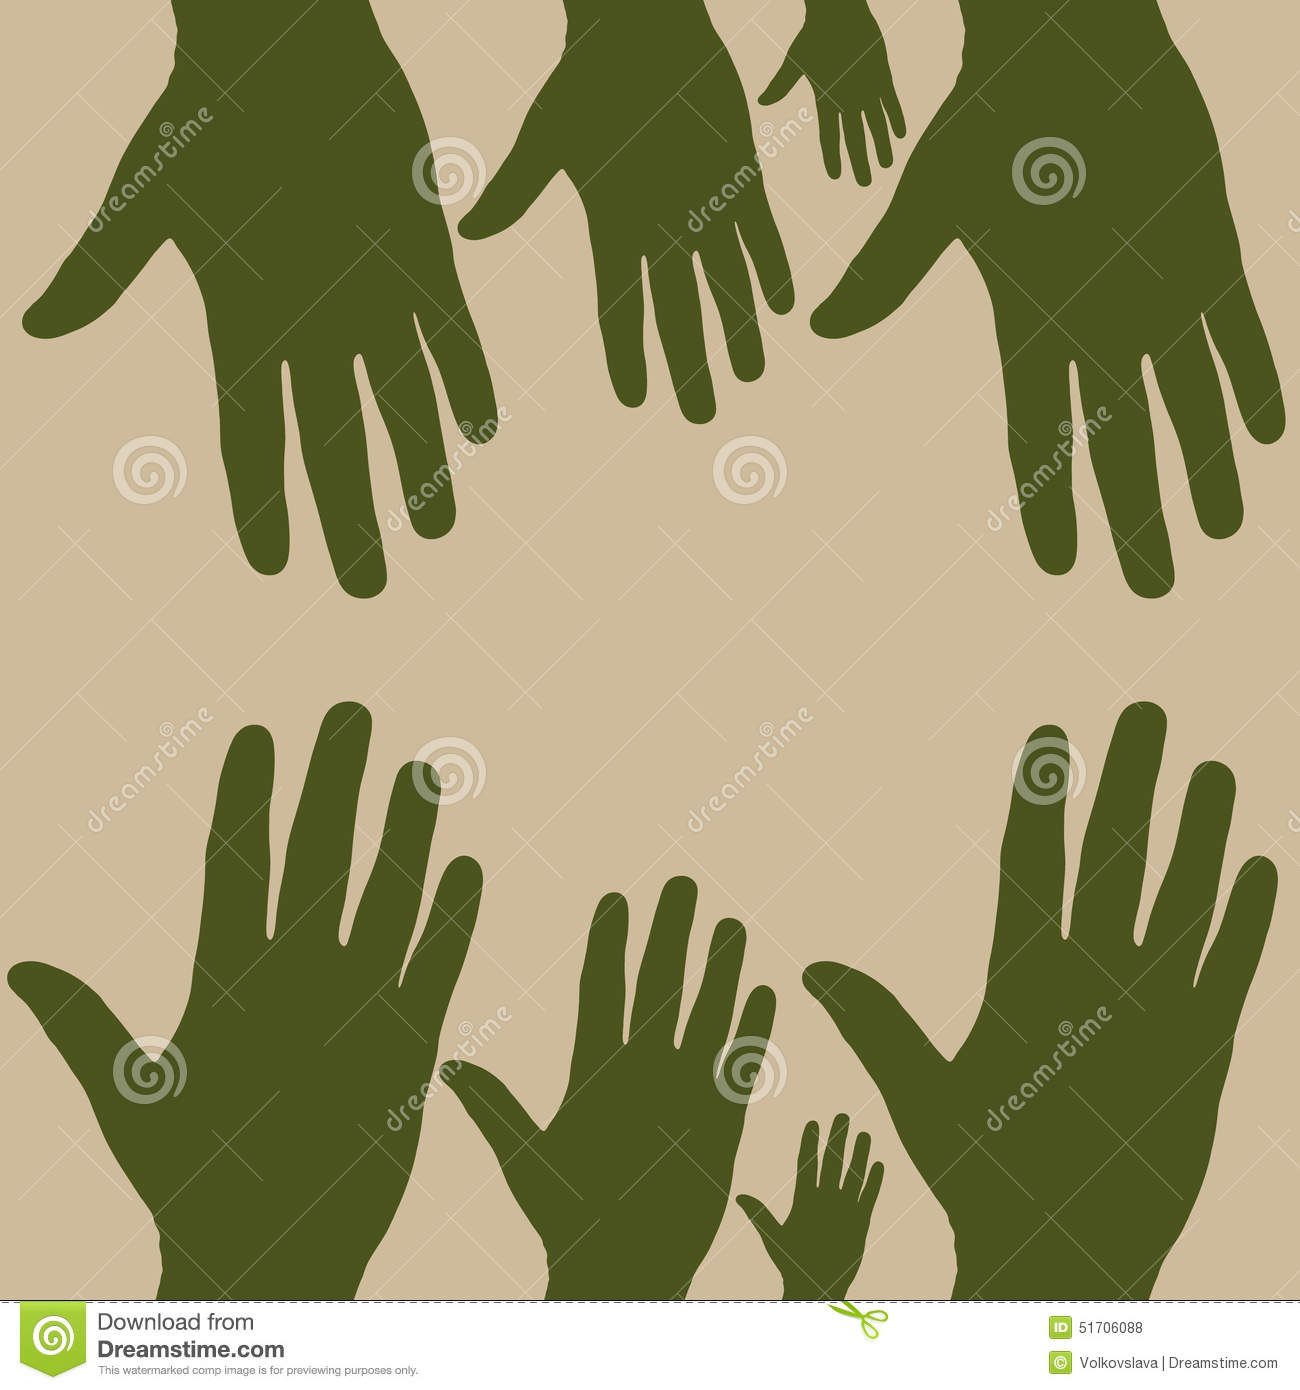 People Helping Each Other: Charity, Helping Other People Icons Royalty-Free Stock